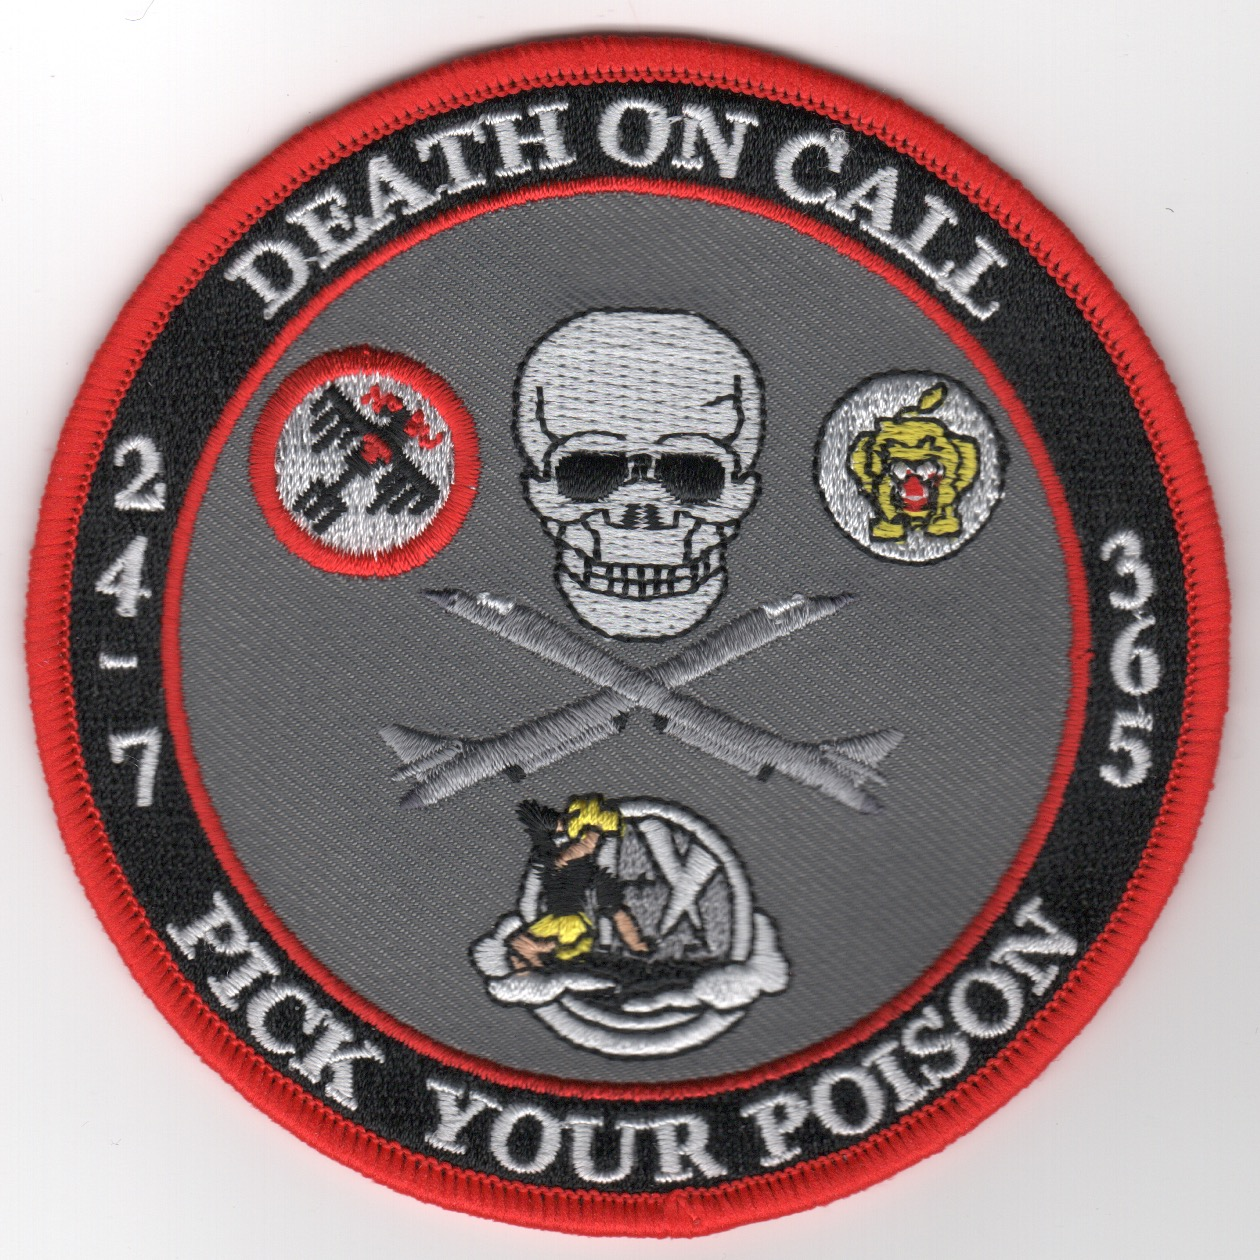 B-1 'Death On Call' Gaggle Patch